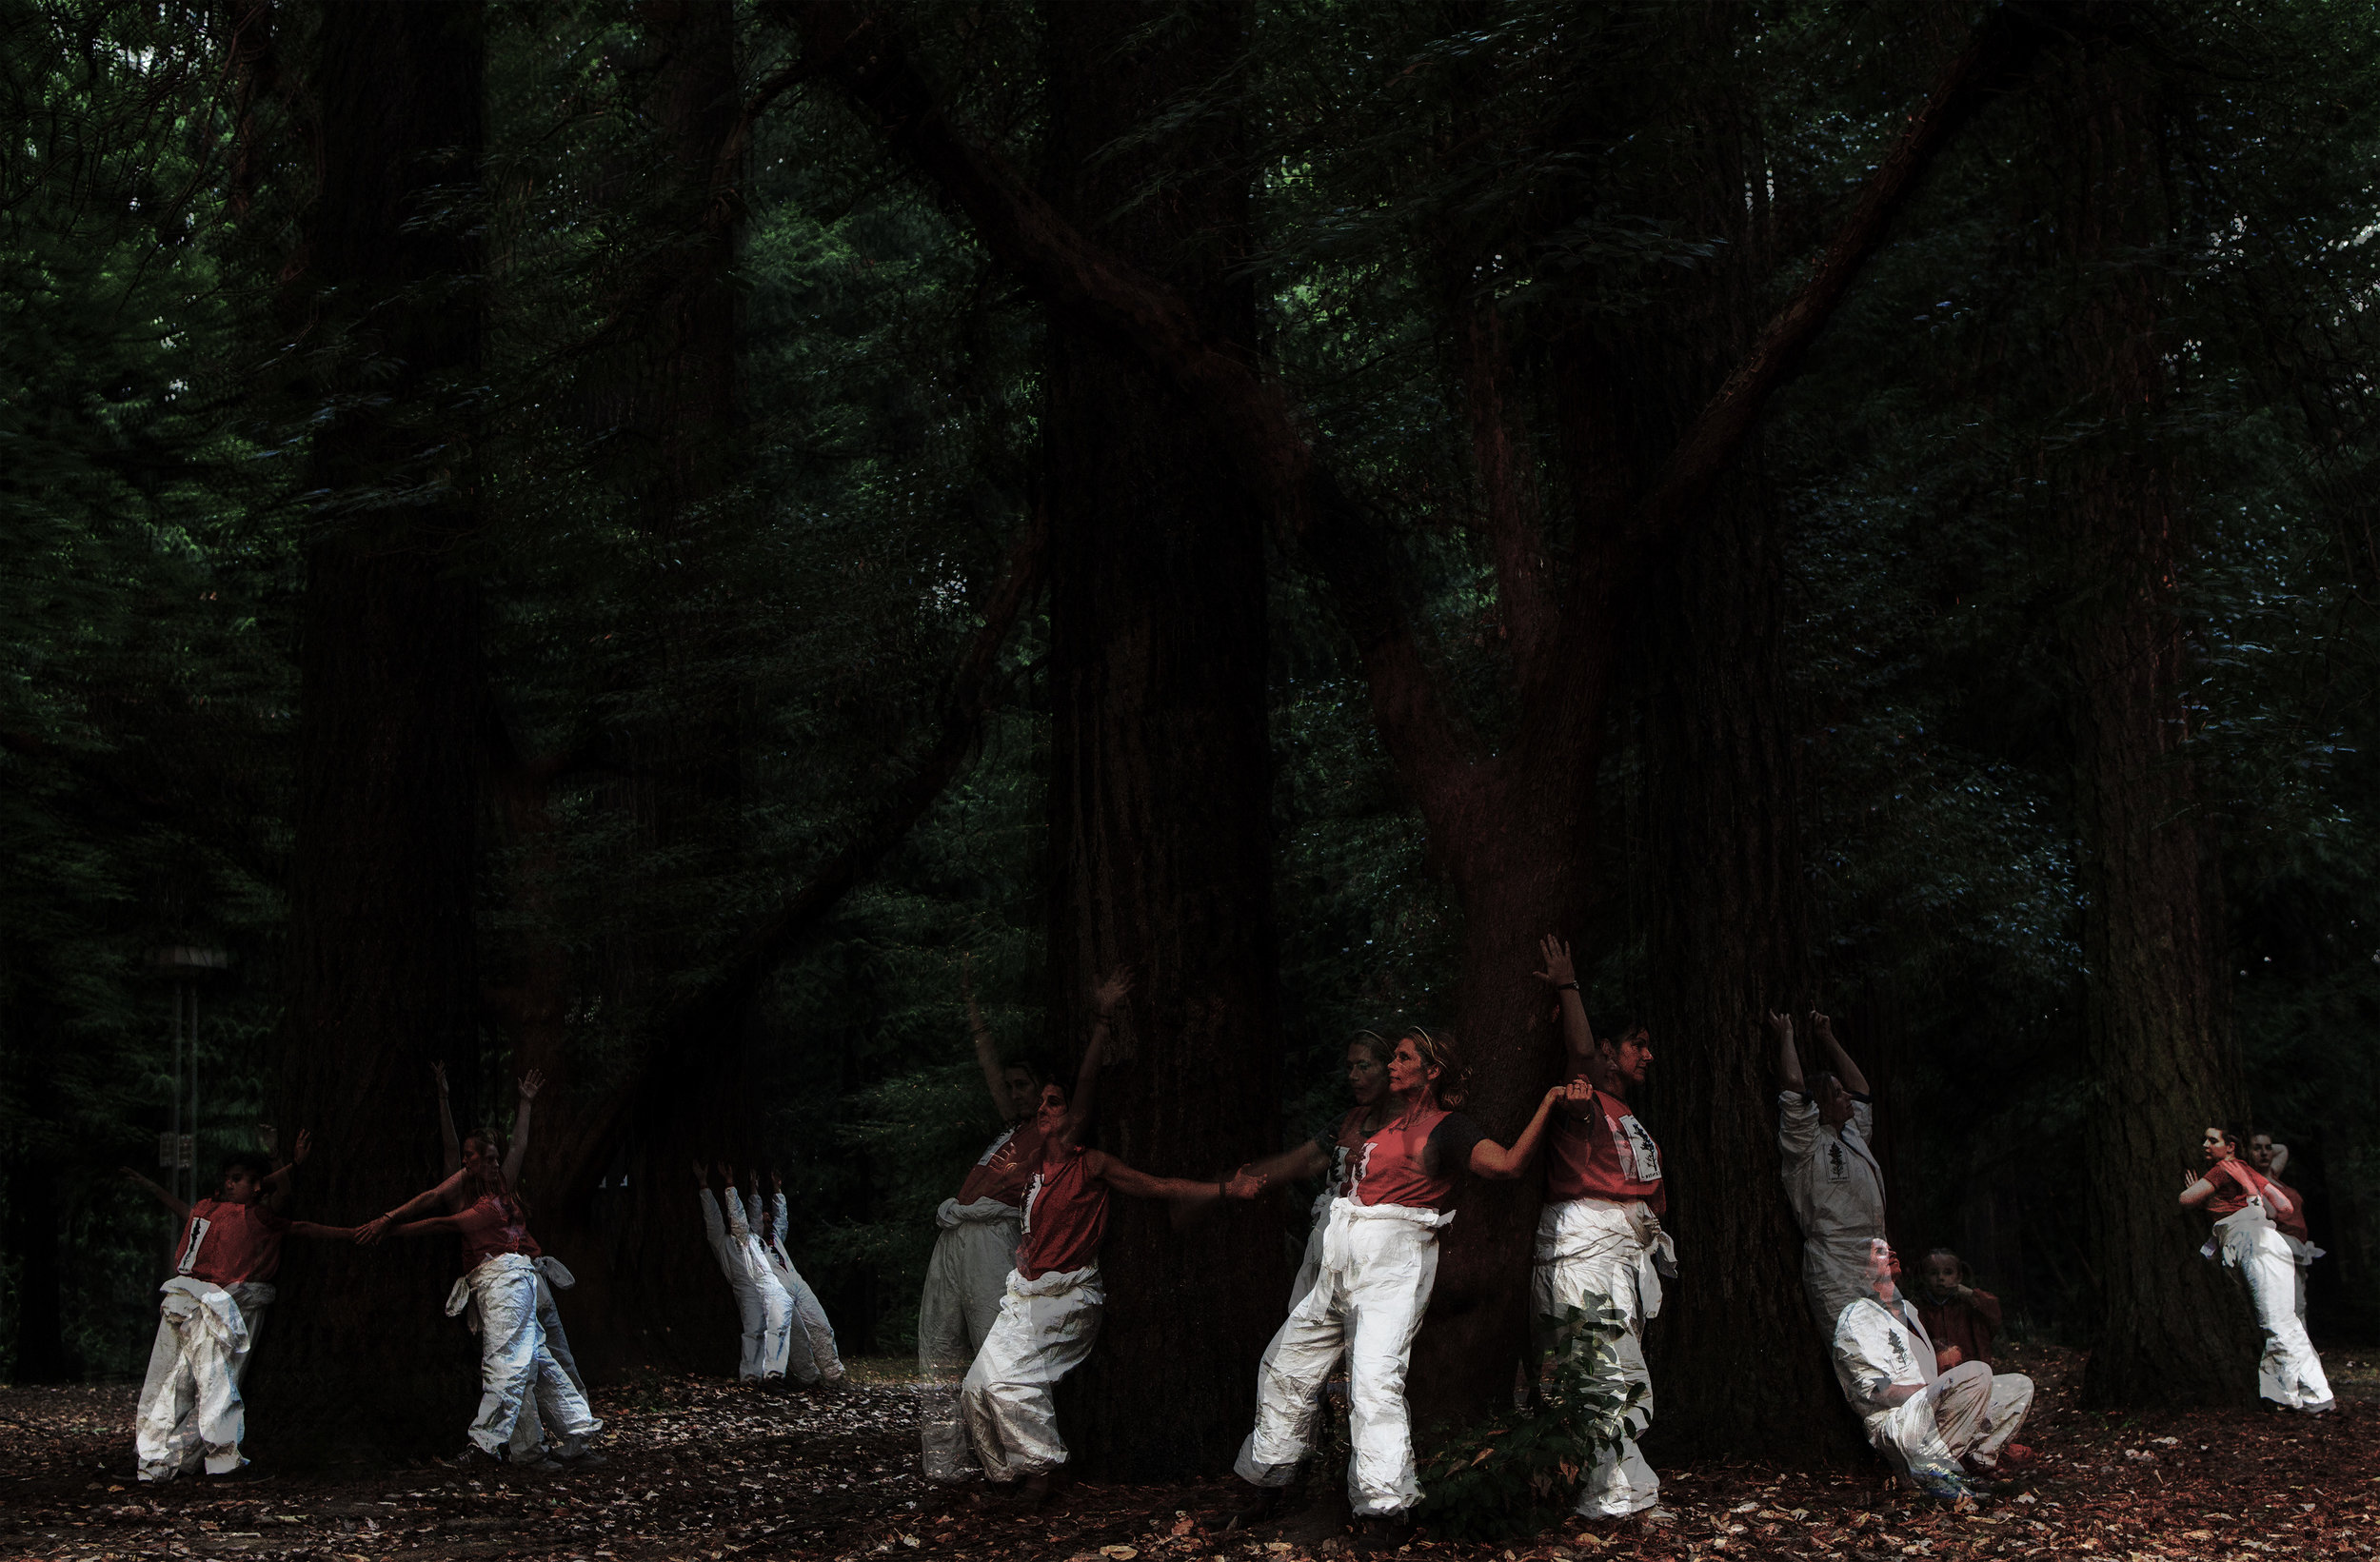 Hand2Mouth_Psychic Utopia_Ensemble Forest _Large Filen_Mishima Photography_Marguier Design.jpg